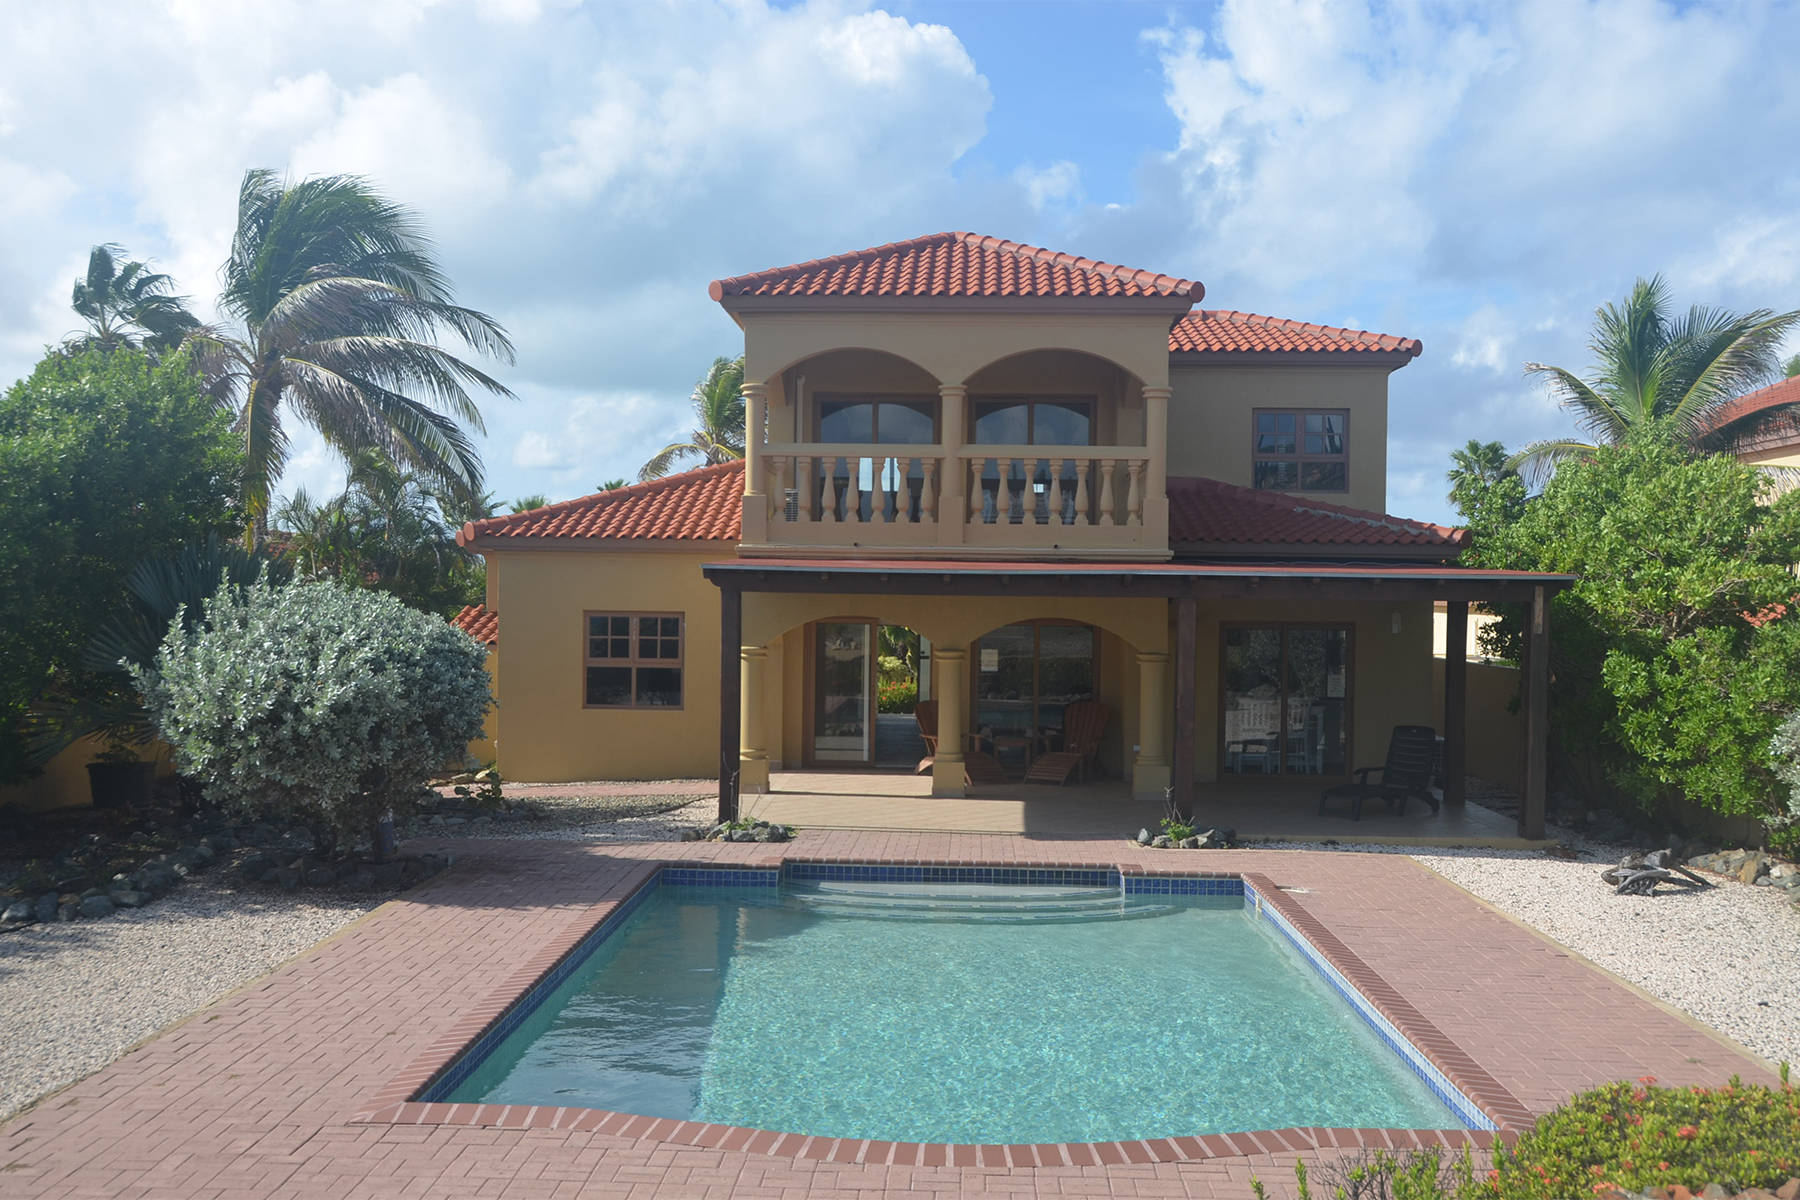 Single Family Home for Sale at Mesa Vista 11 Malmok, Aruba Aruba